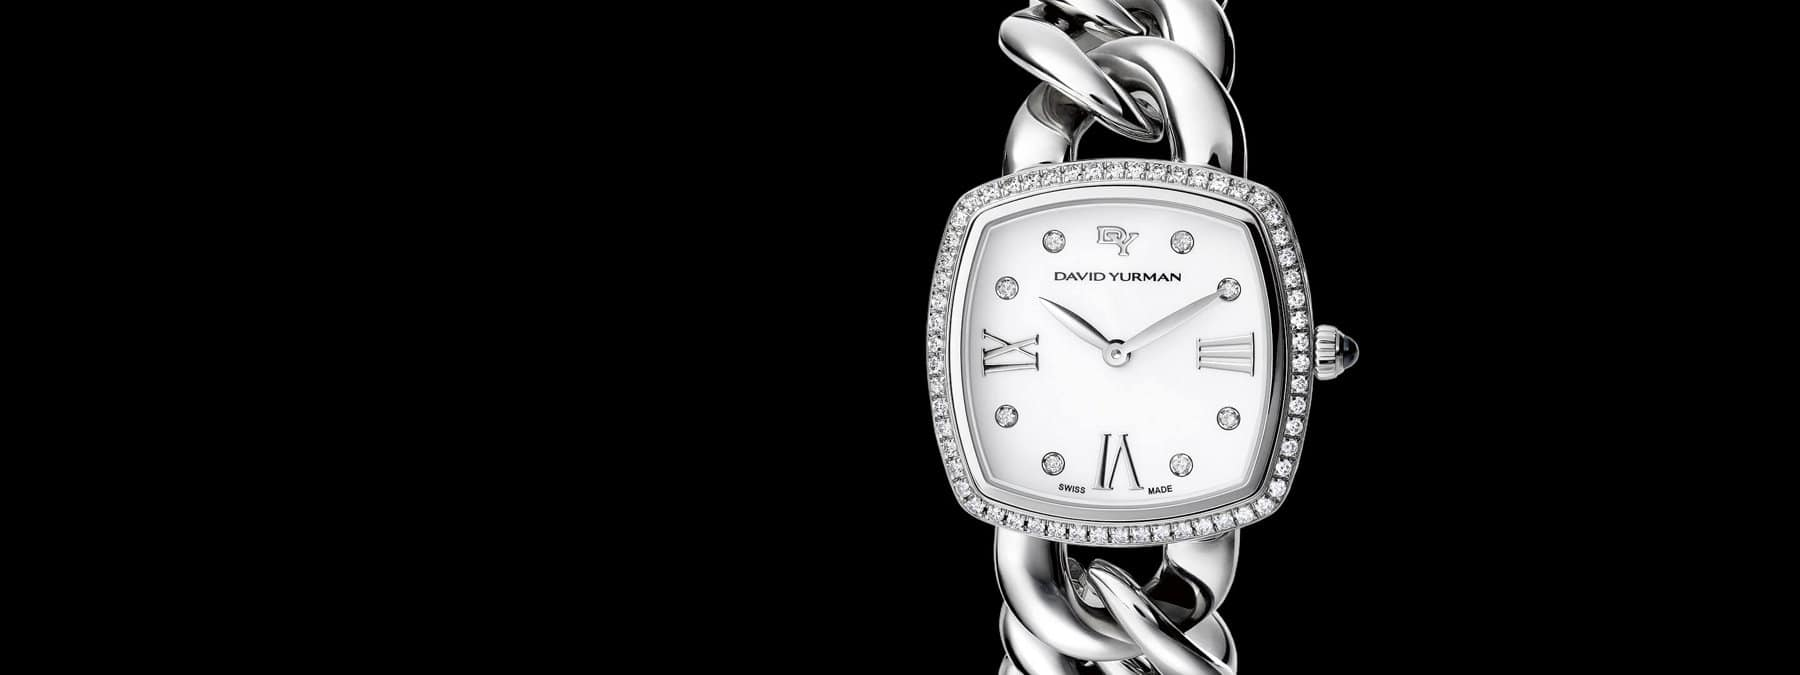 A color photograph shows a close-up of a David Yurman Classic women's watch in front of a black backdrop. The bracelet watch is crafted from stainless steel with a halo of pavé diamonds around its mother-of-pearl face and six white diamonds set between roman numerals on its face.